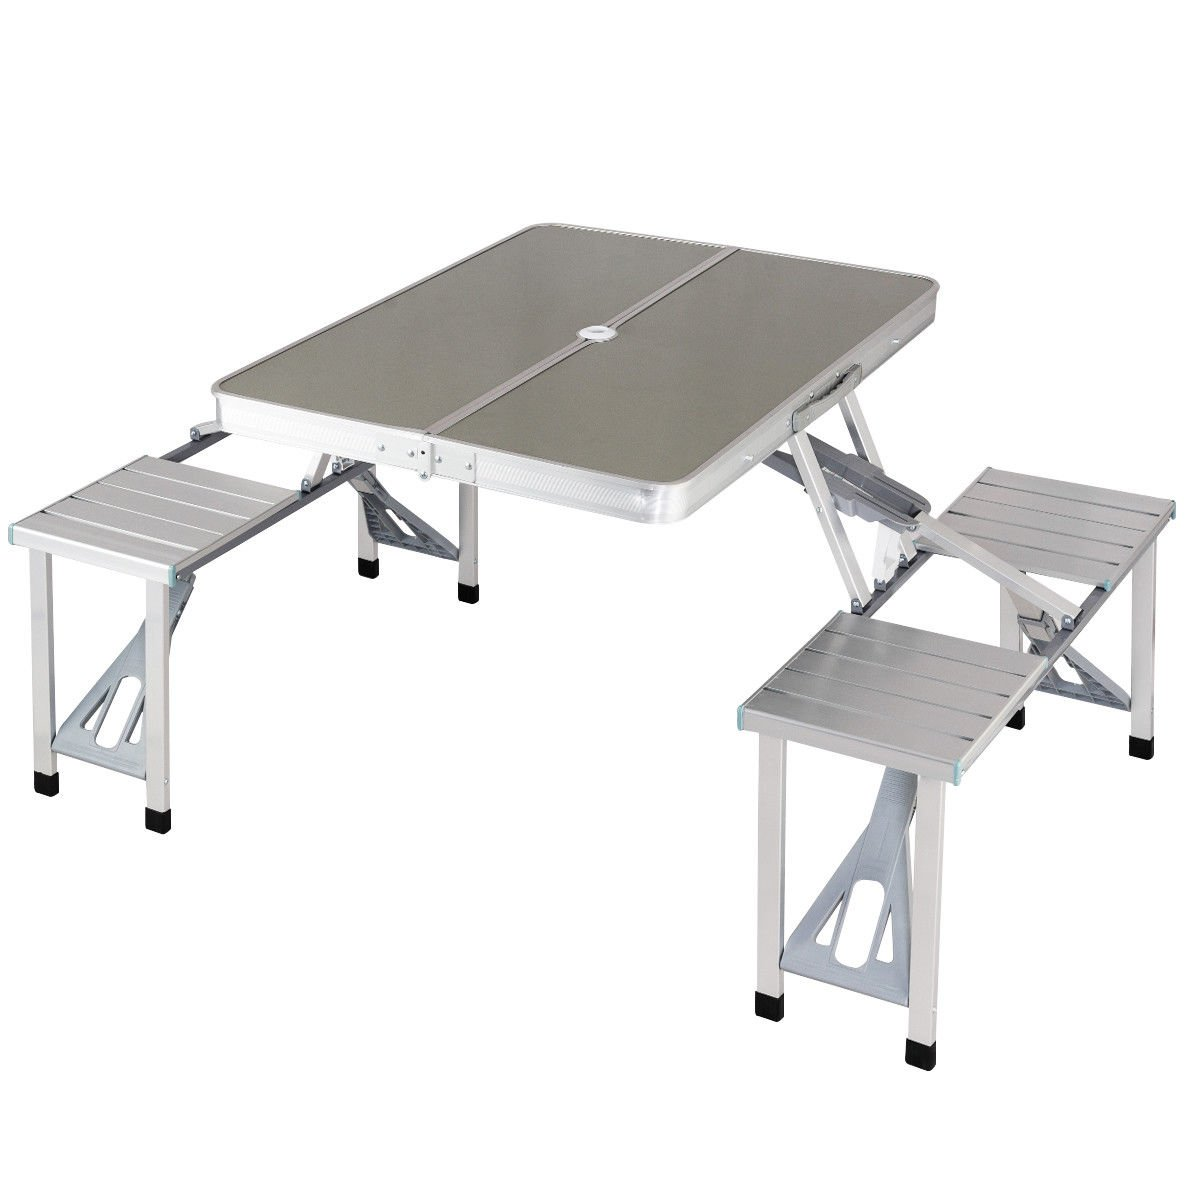 FDInspiration Silver Multi Function Outdoor Aluminum Camping Table Picnic Folding Carry Case w/4 Connected Seats